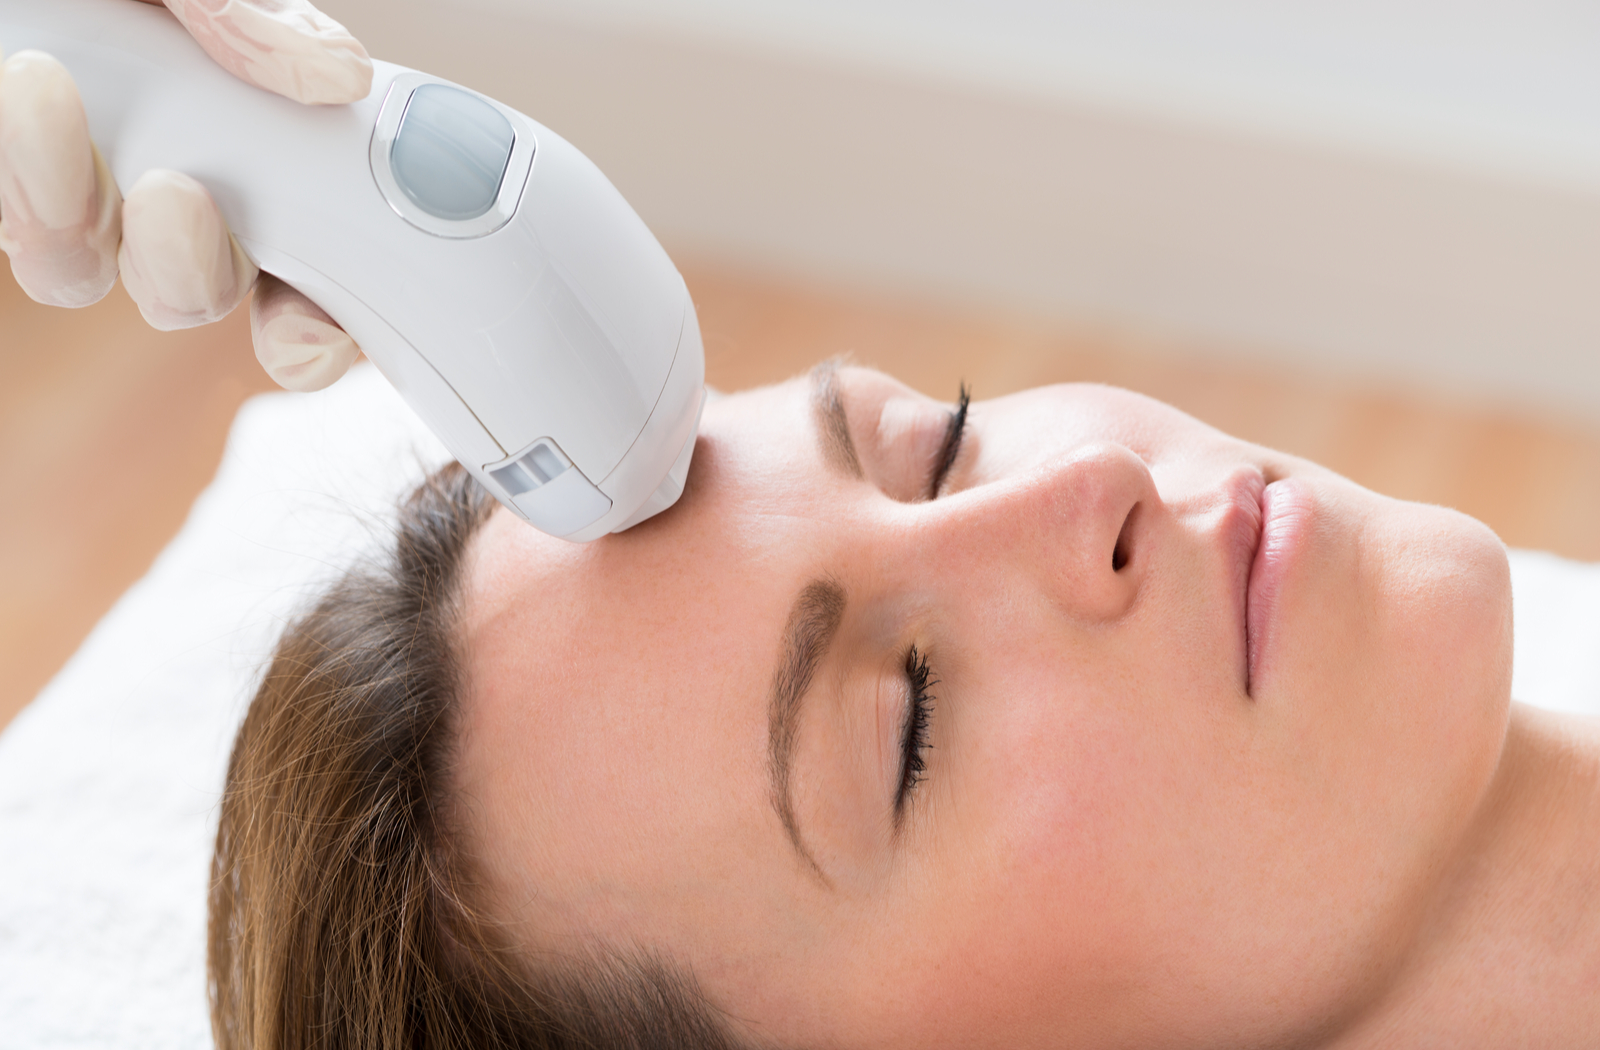 Young women receiving IPL treatment near forehead area